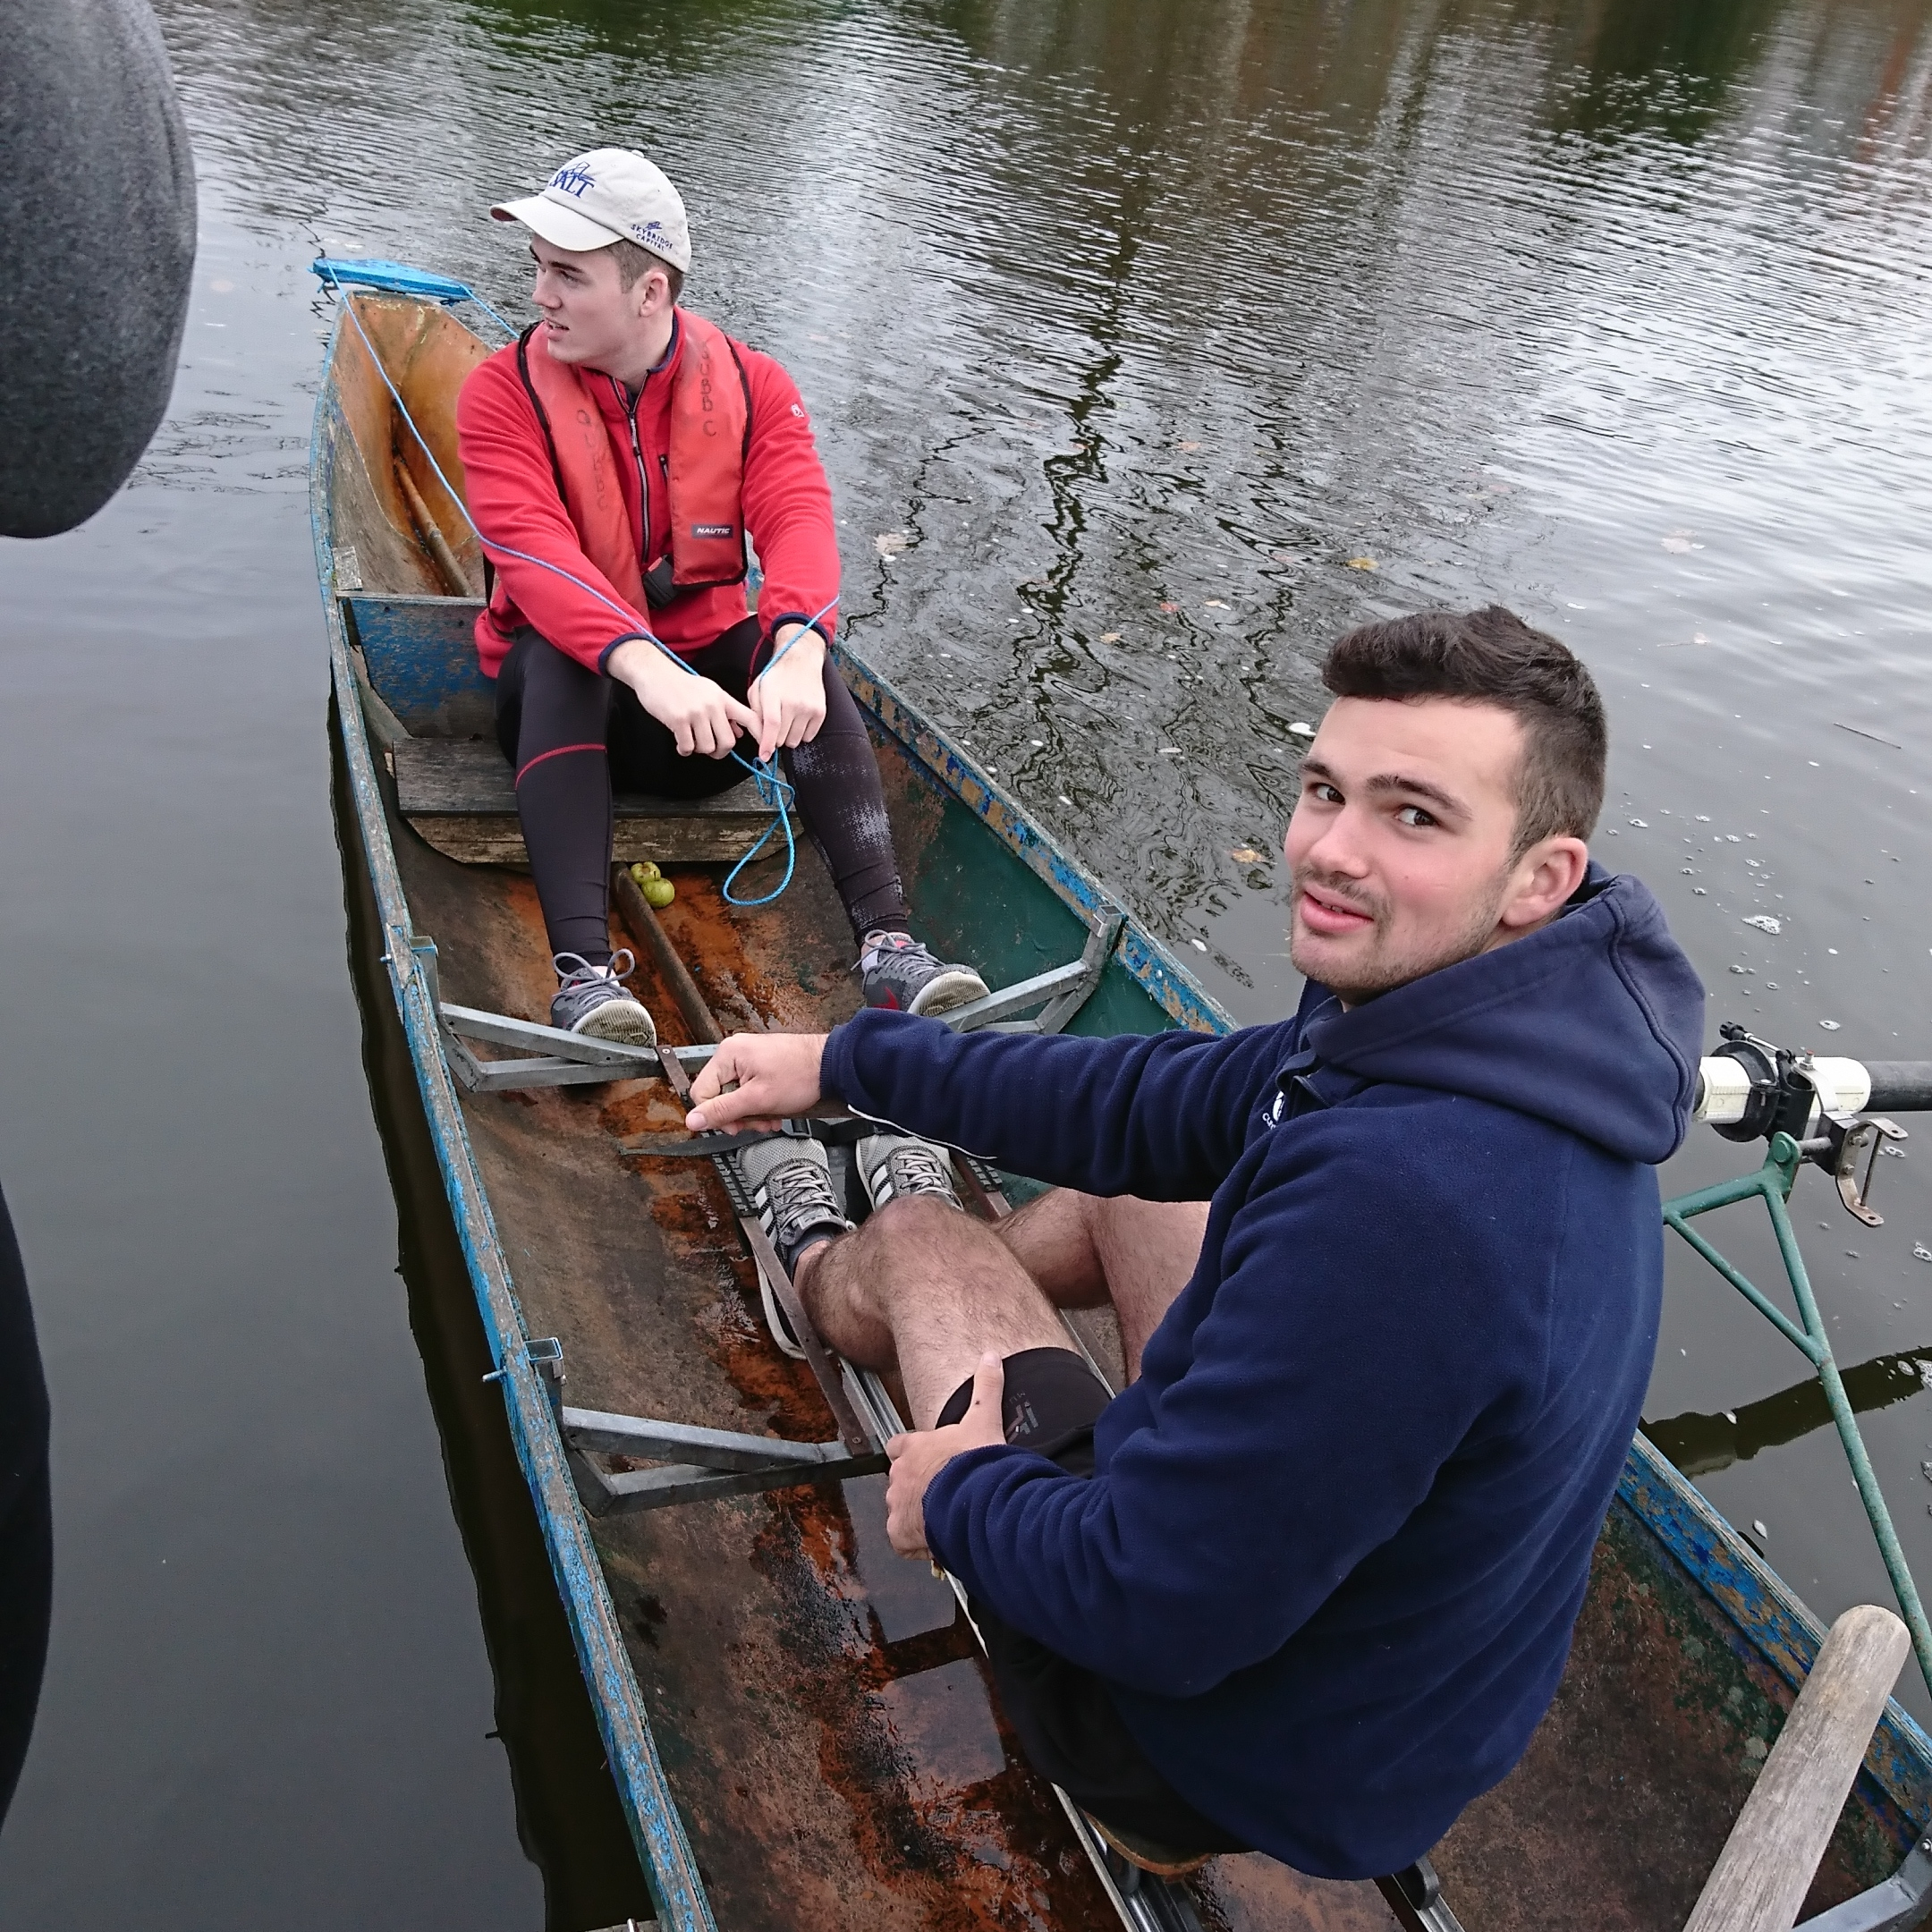 Jack Lafferty tries his hand at Coxing for the first, and hopefully last, time.